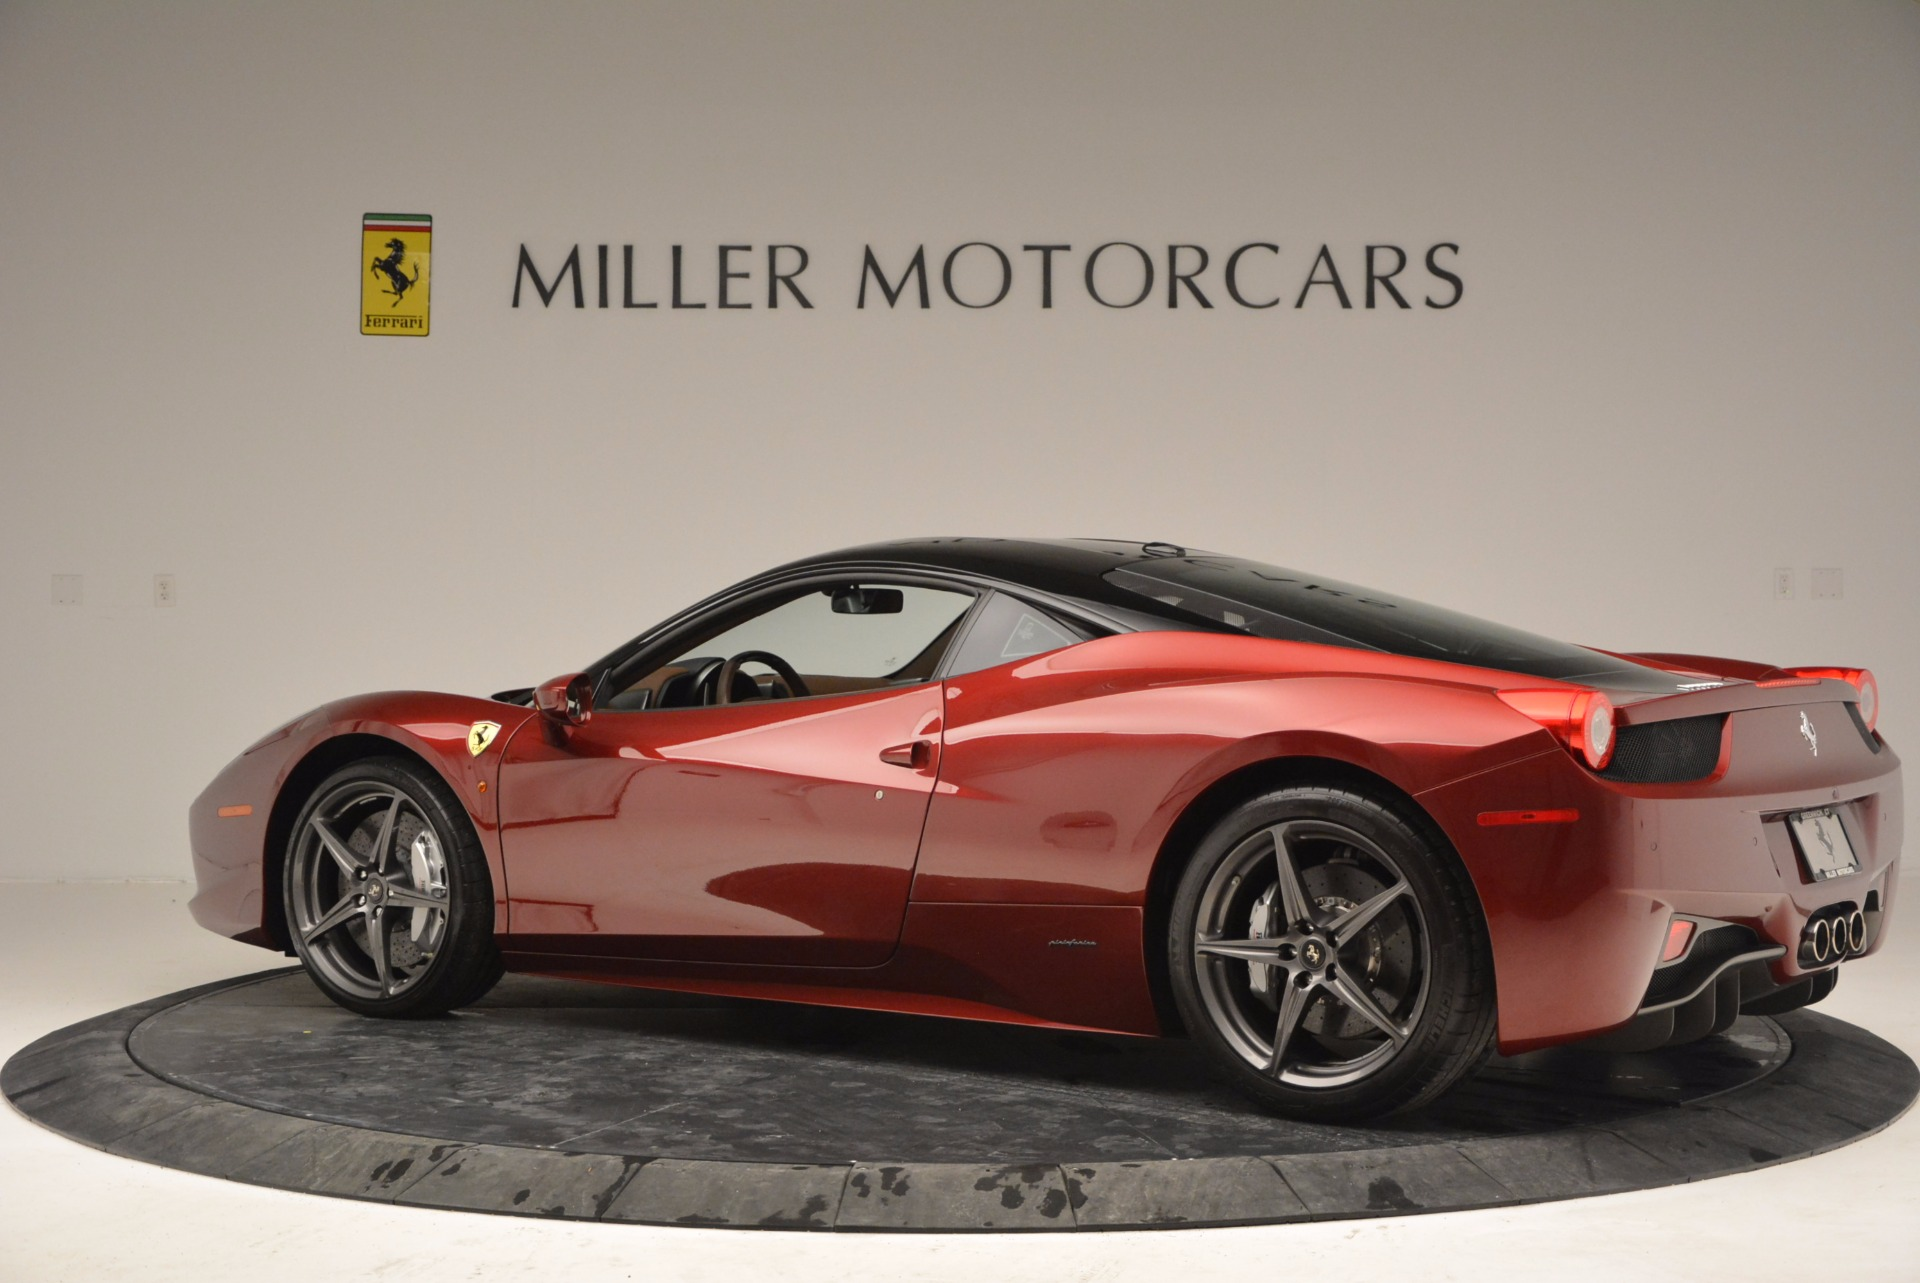 2011 ferrari 458 italia stock # 4374 for  near greenwich, ct